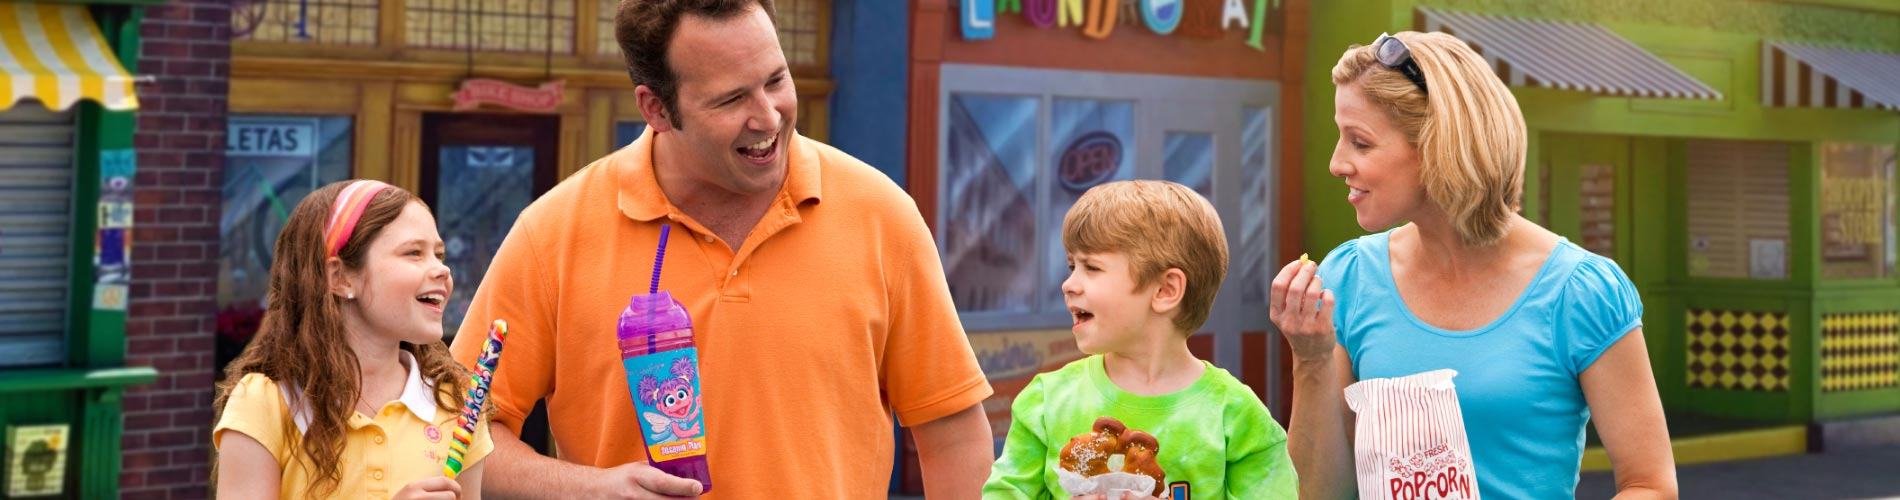 Restaurant and Dining options at Sesame Place San Diego